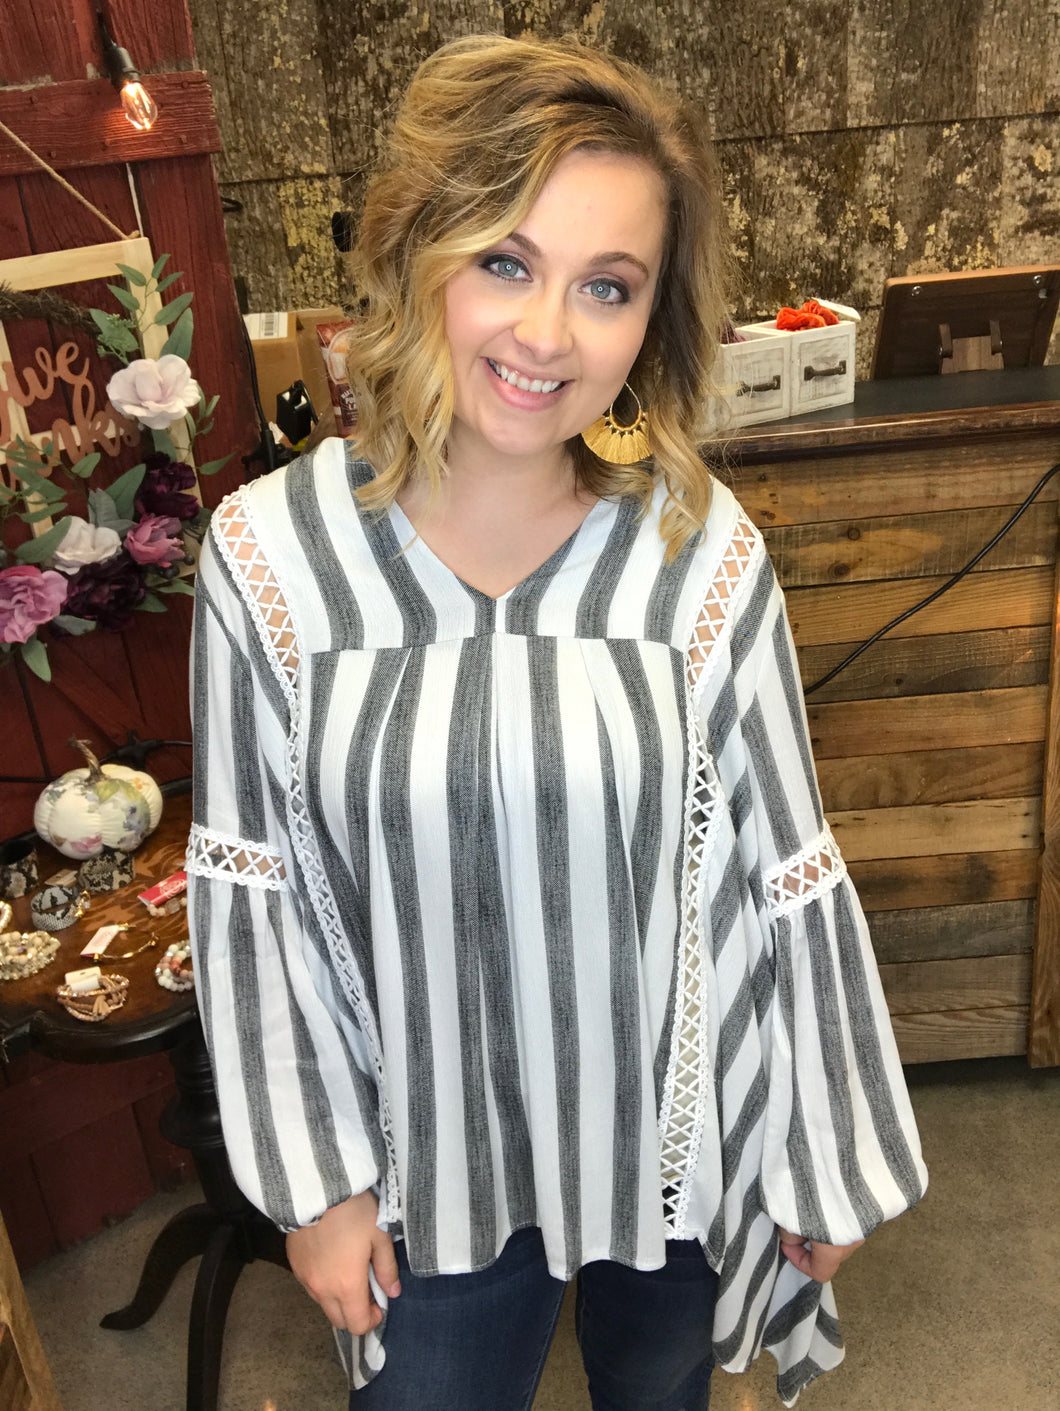 SALE ~ The One Top With the Stripes